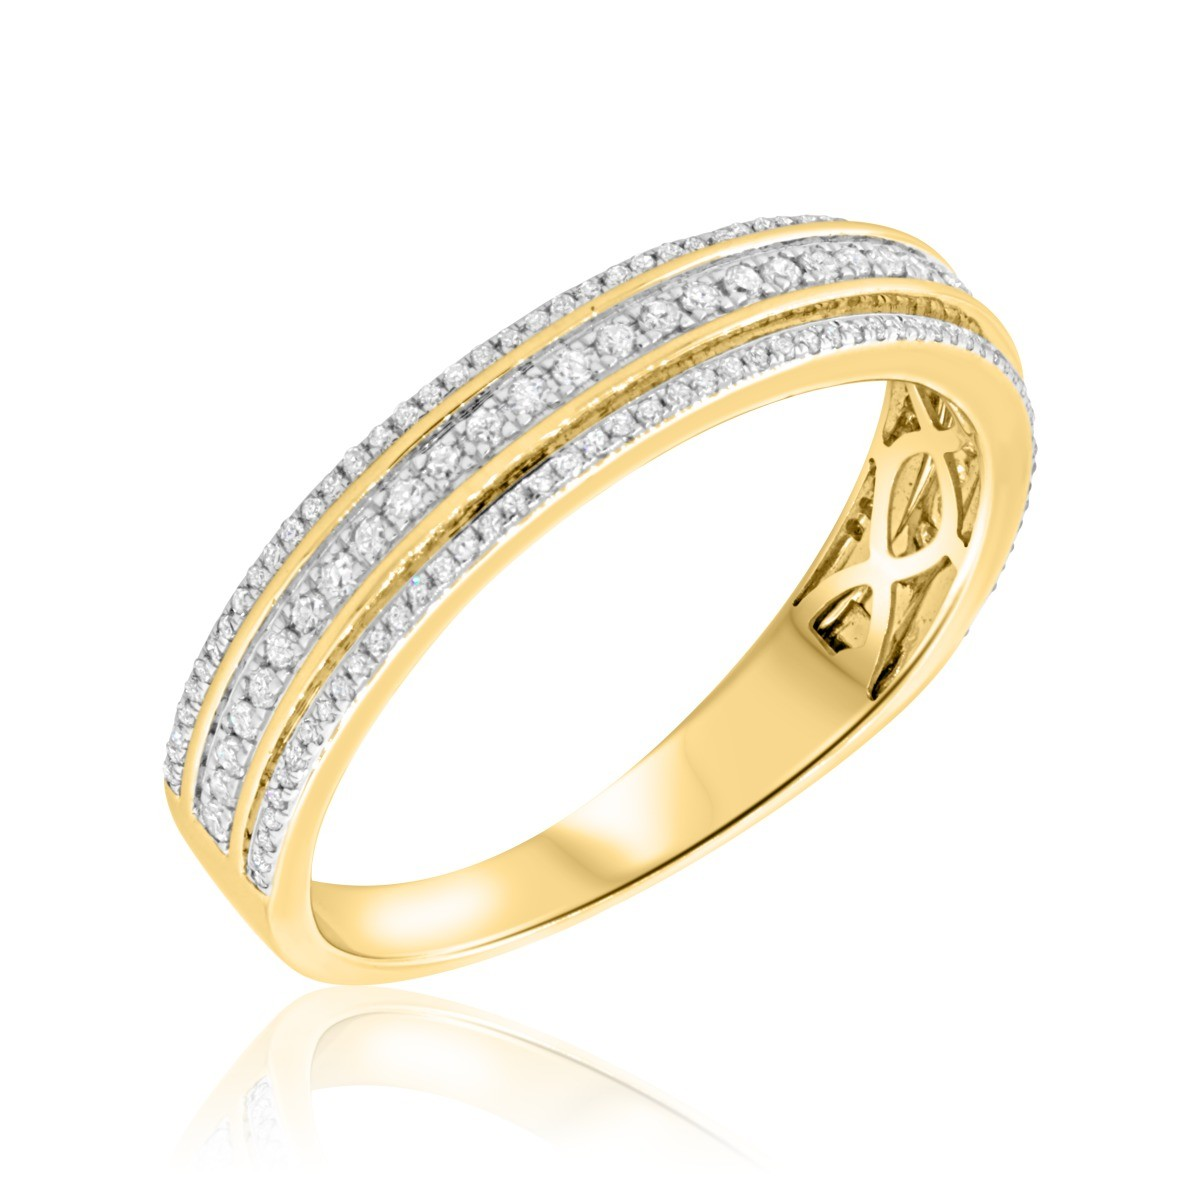 5/8 Carat T.W. Diamond Mens Wedding Band  14K Yellow Gold